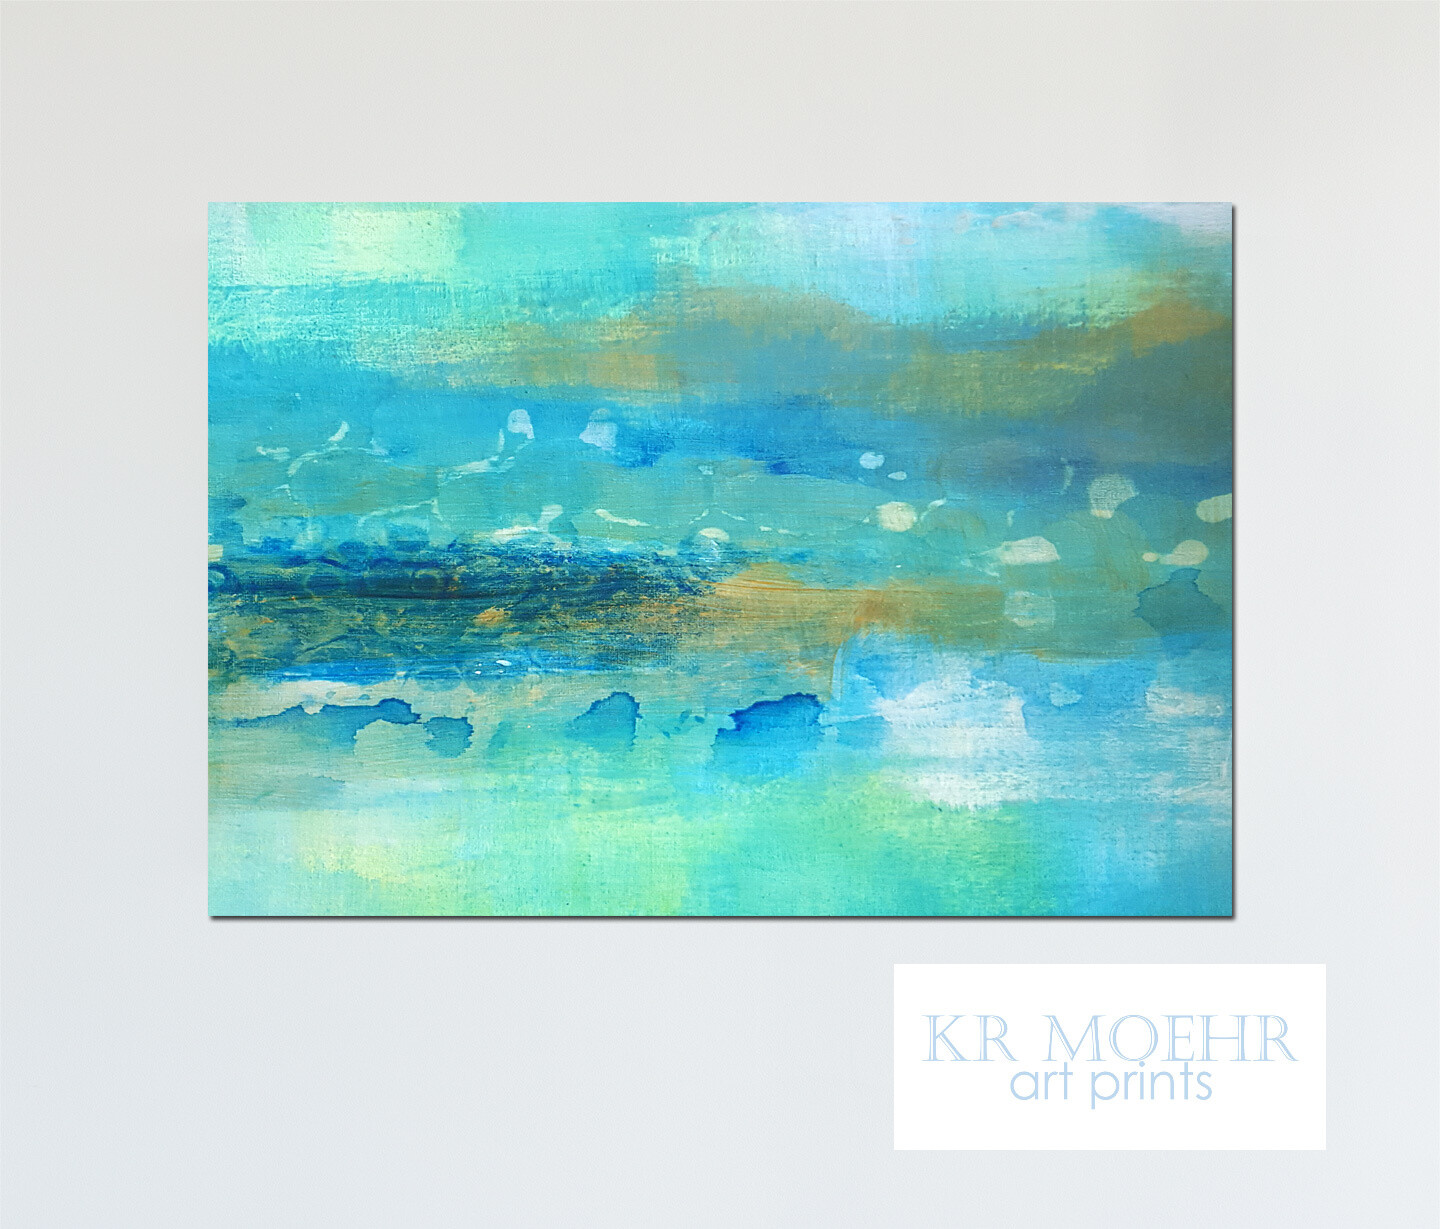 Wall Art Prints - Abstract Blue Green - Ready to Hang Canvas